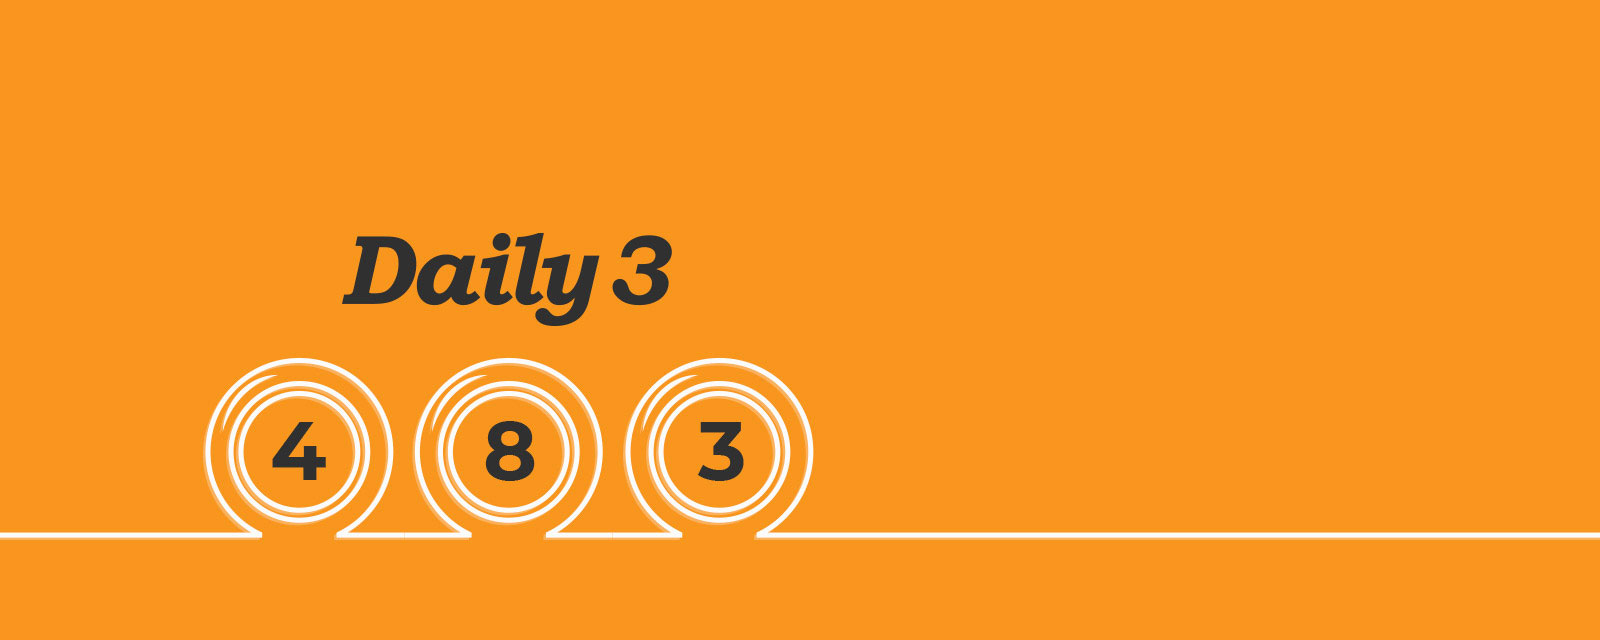 Three numbered balls with an orange background.